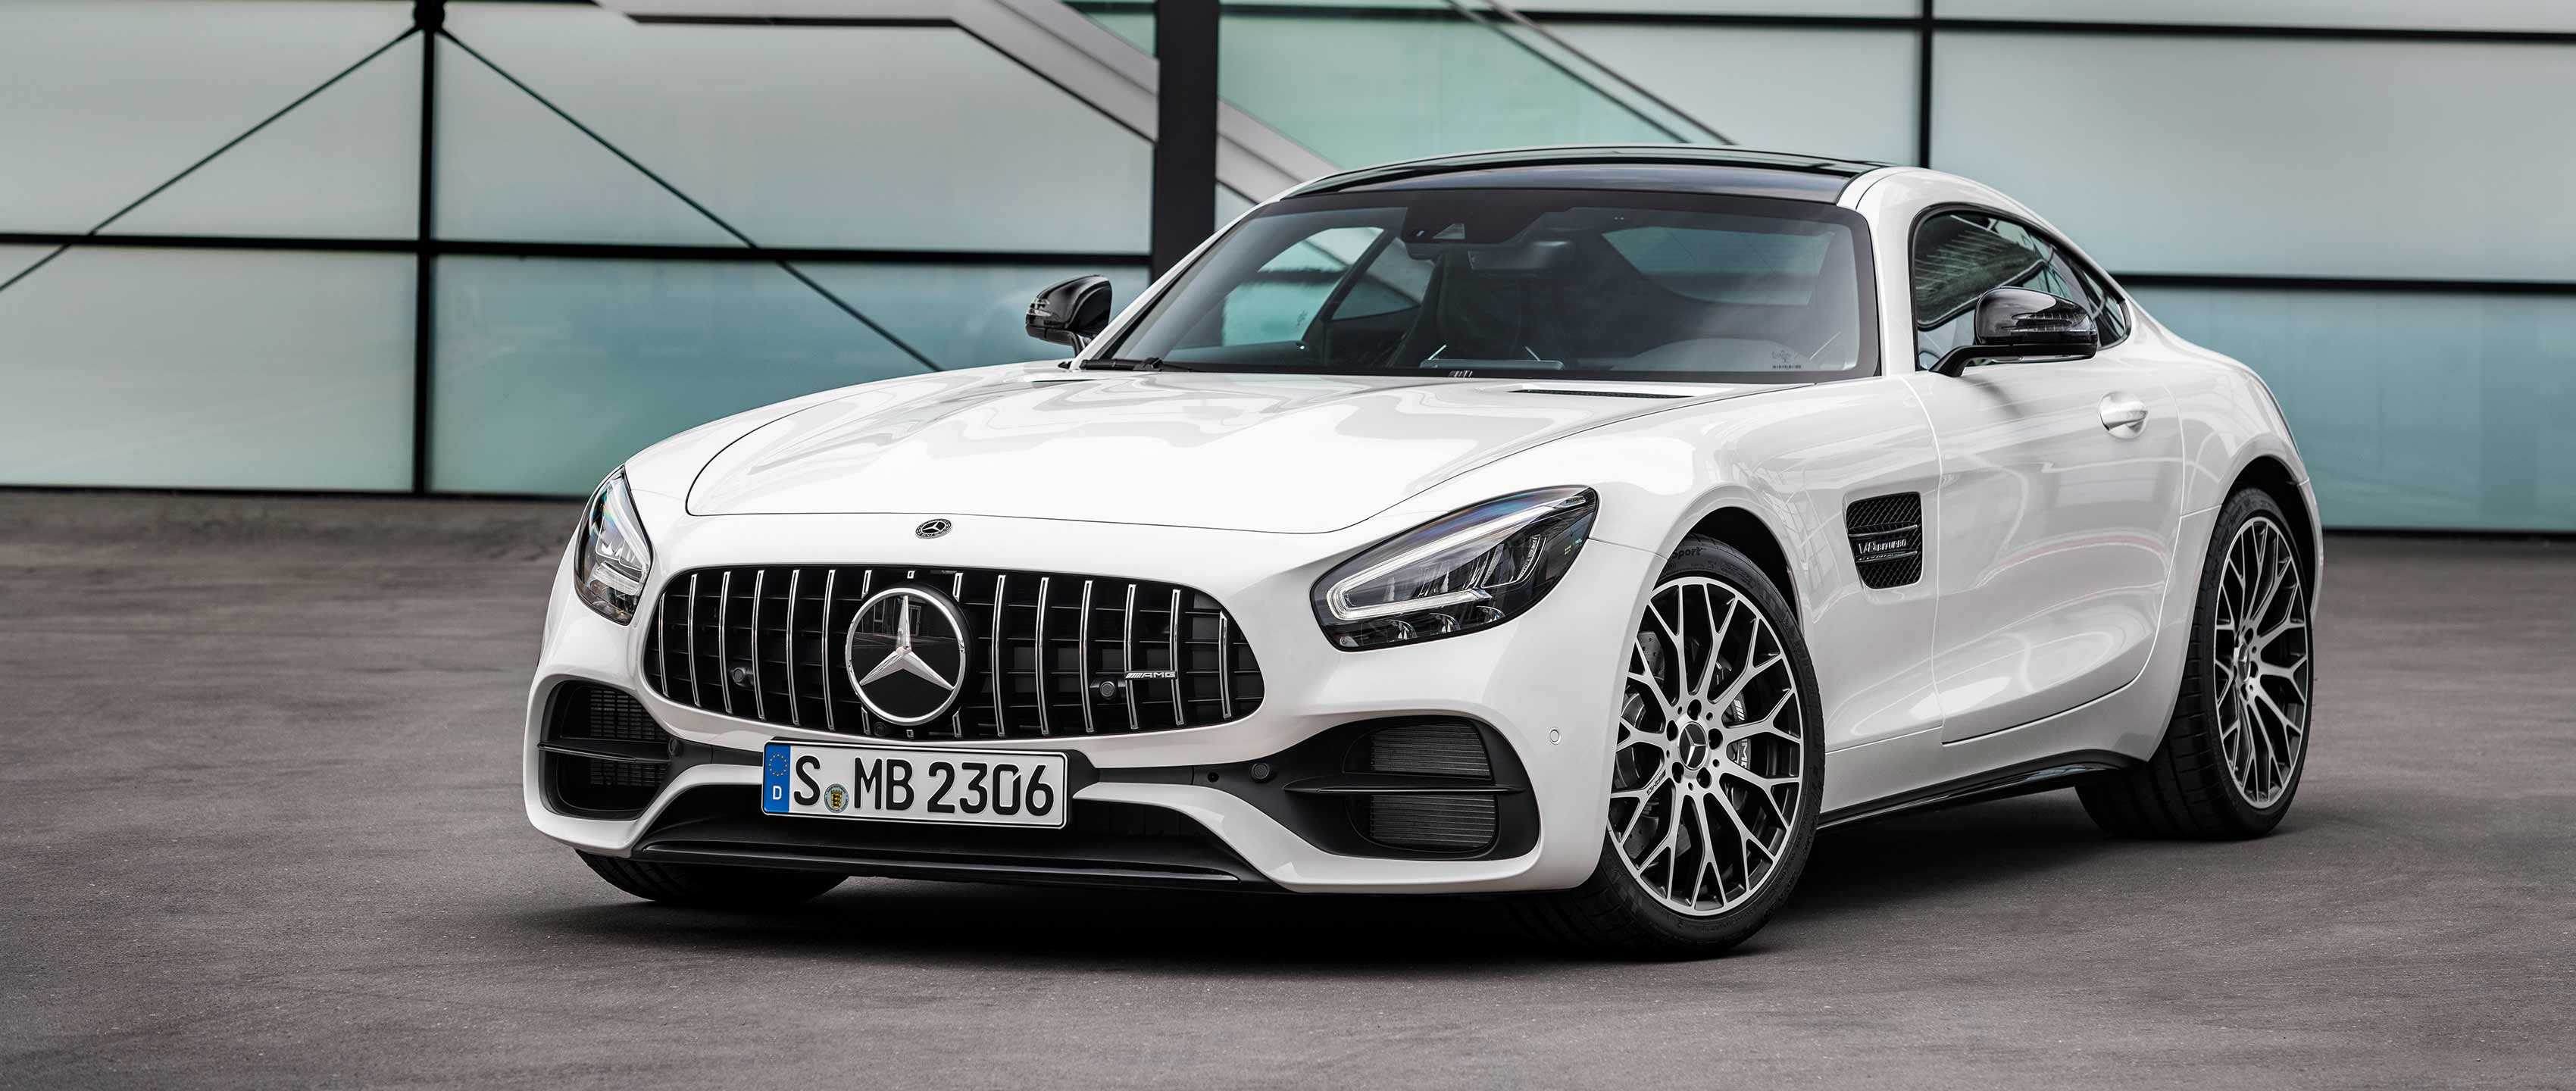 23 All New Mercedes Amg Gt 2019 Pricing